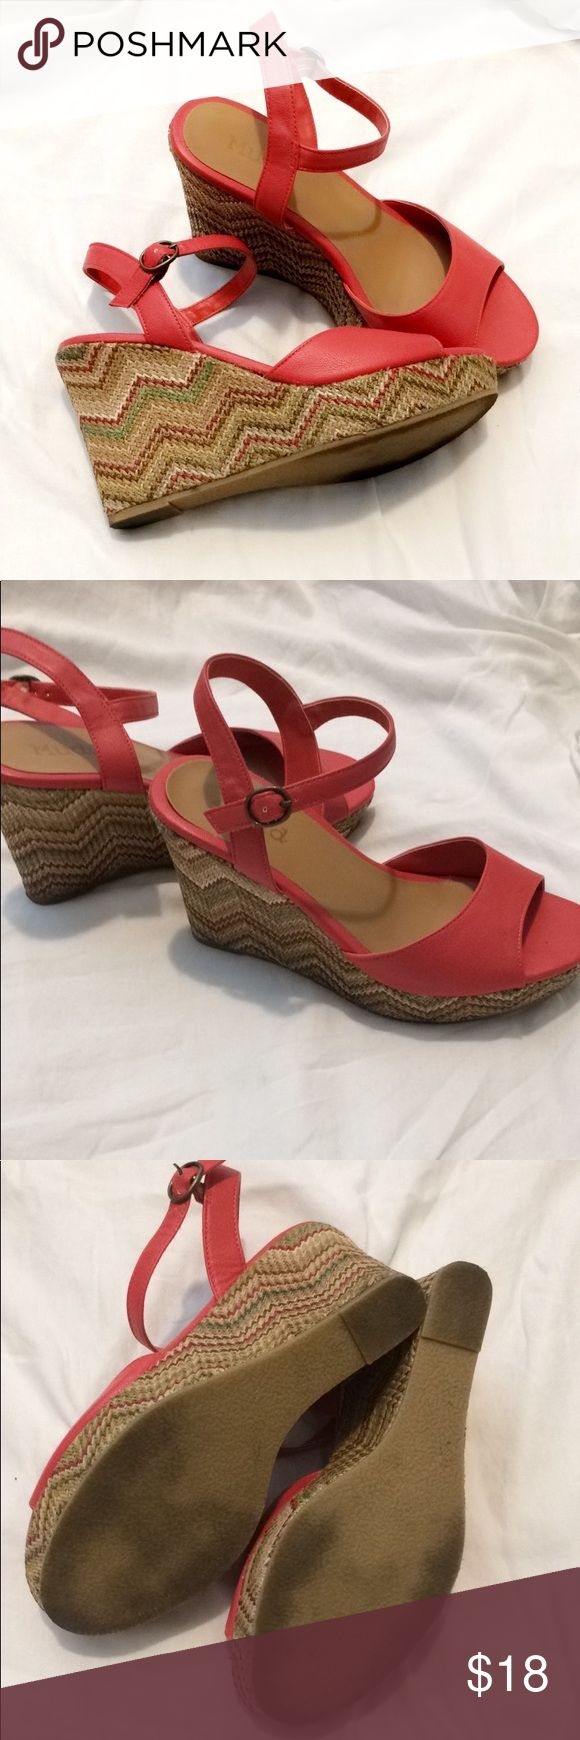 """Mudd Coral Chevron Bailey Wedges Boho 7.5 platform 1"""" platform with a 4"""" wedge Adorable multi color chevron wedge  Worn very minimally No damage to wedge or straps  EUC Very comfortable  Size 7 1/2 No trades Mudd Shoes Wedges"""